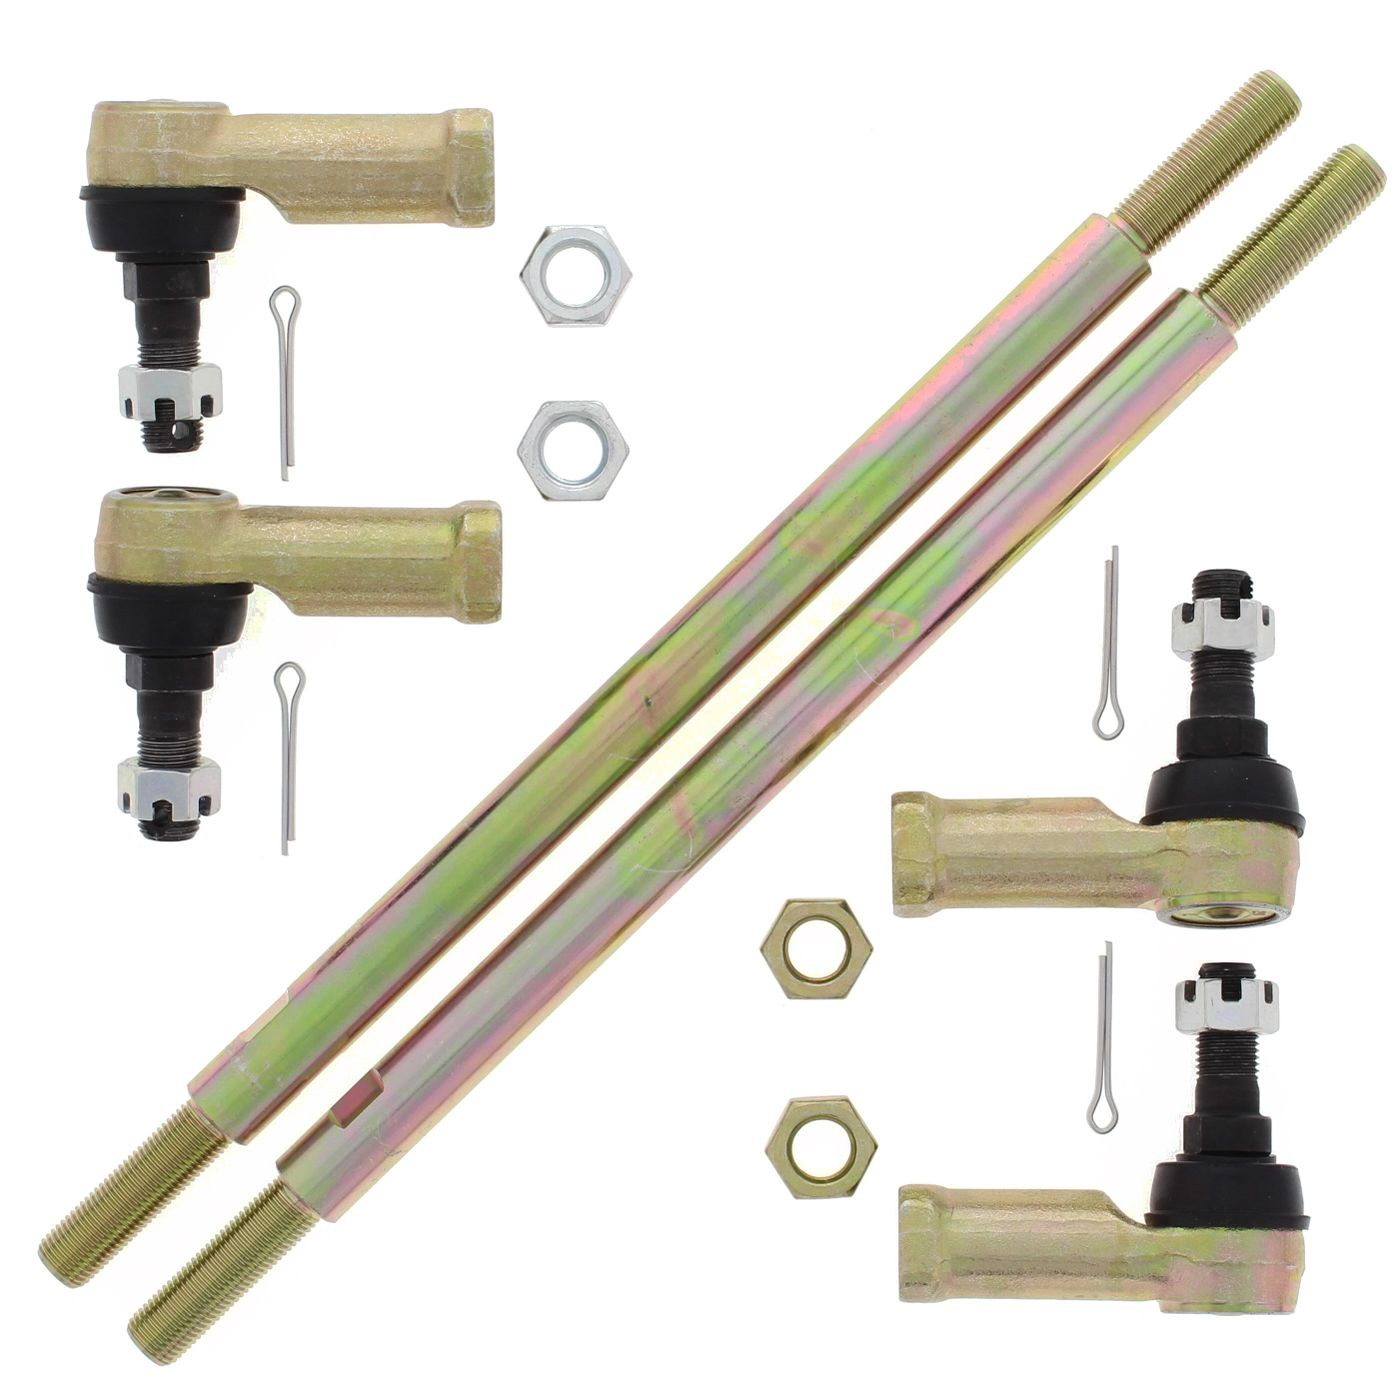 Wrp Tie Rod Kits - WRP521027 image